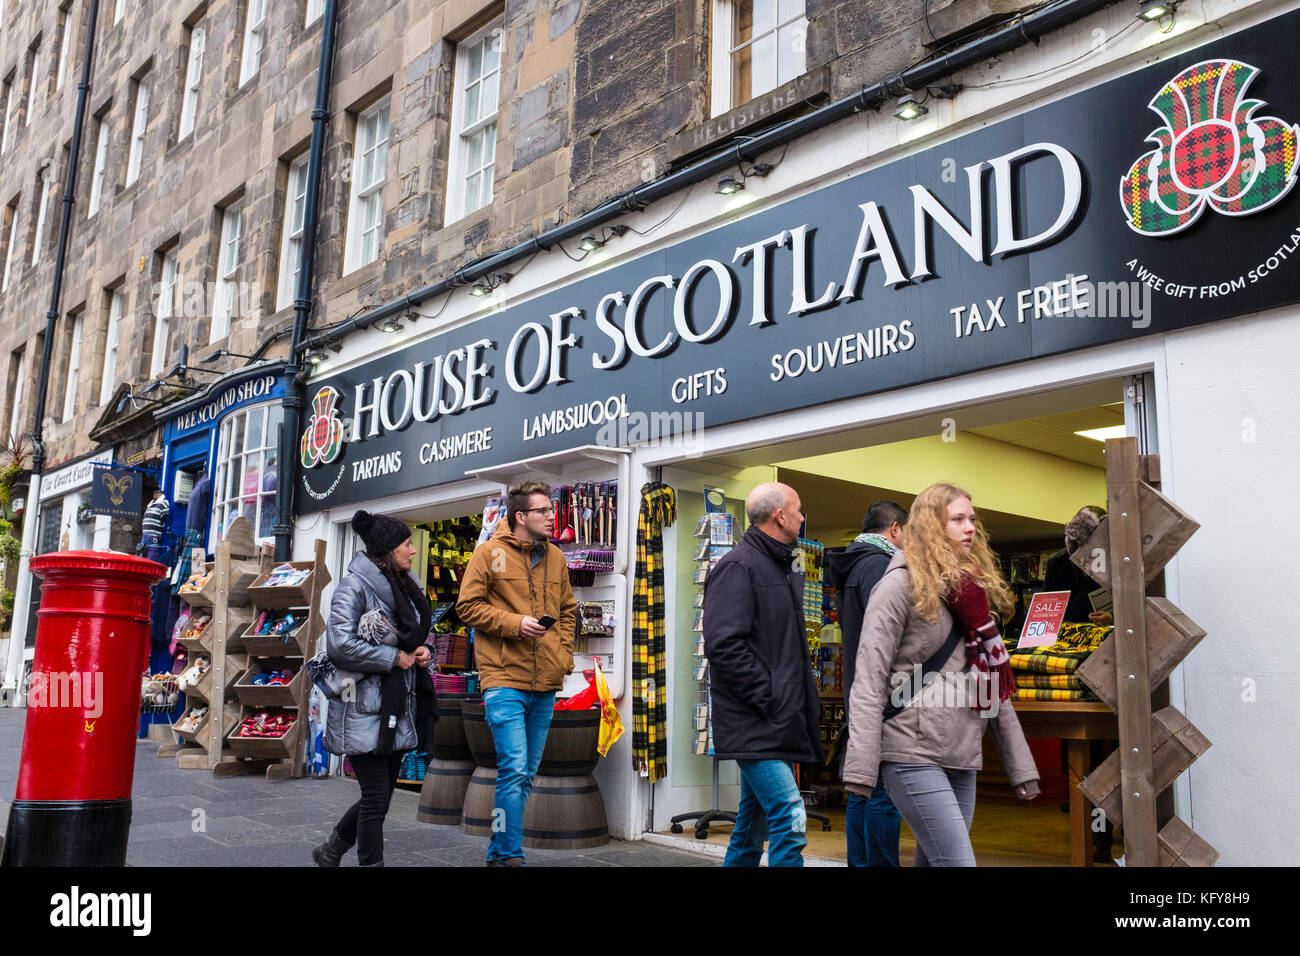 Exterior of typical tourist souvenir shop on the Royal Mile in Edinburgh , Scotland, United Kingdom. - Stock Image